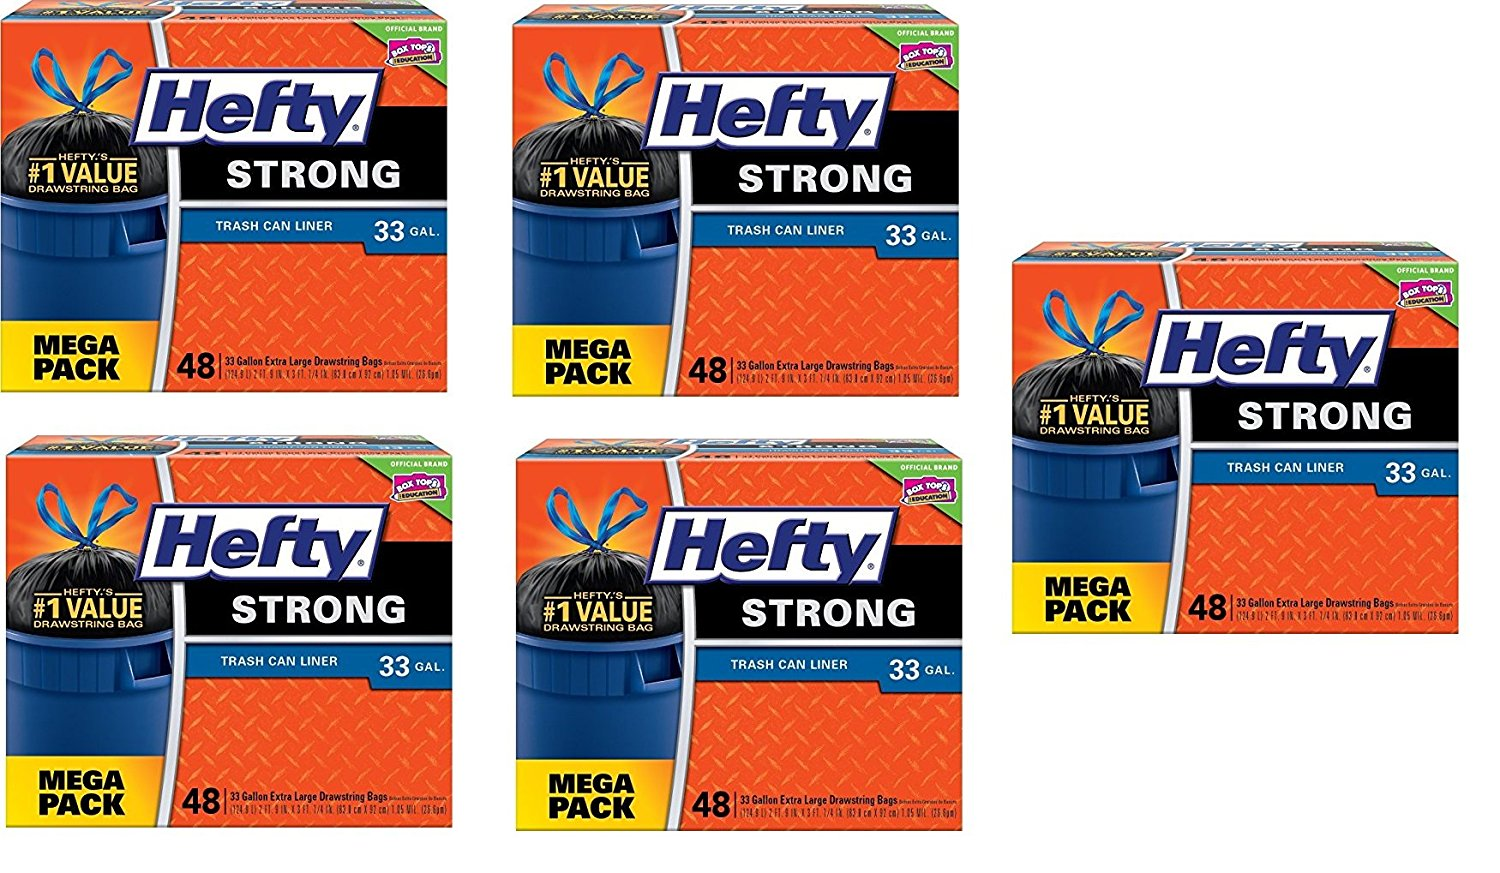 Hefty Strong Large Trash Bags (Trash Can Liner, Drawstring, 33 Gallon) (5 Pack(48 Count))